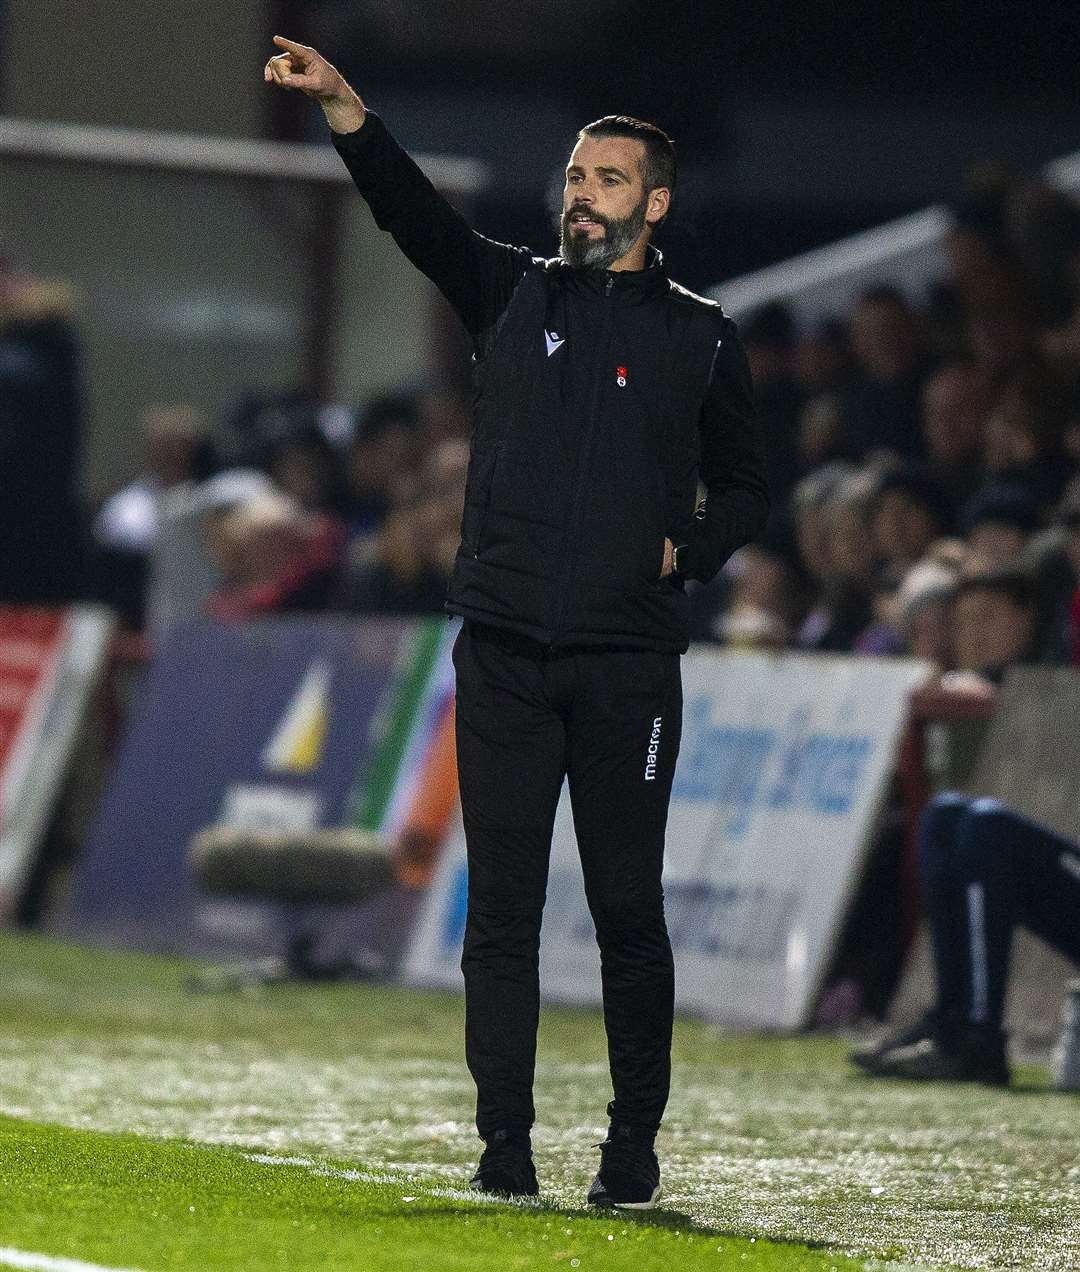 Picture - Ken Macpherson, Inverness. Ross County(0) v Rangers(4). 30.10.19. Ross County co-manager Stuart Kettlewell.